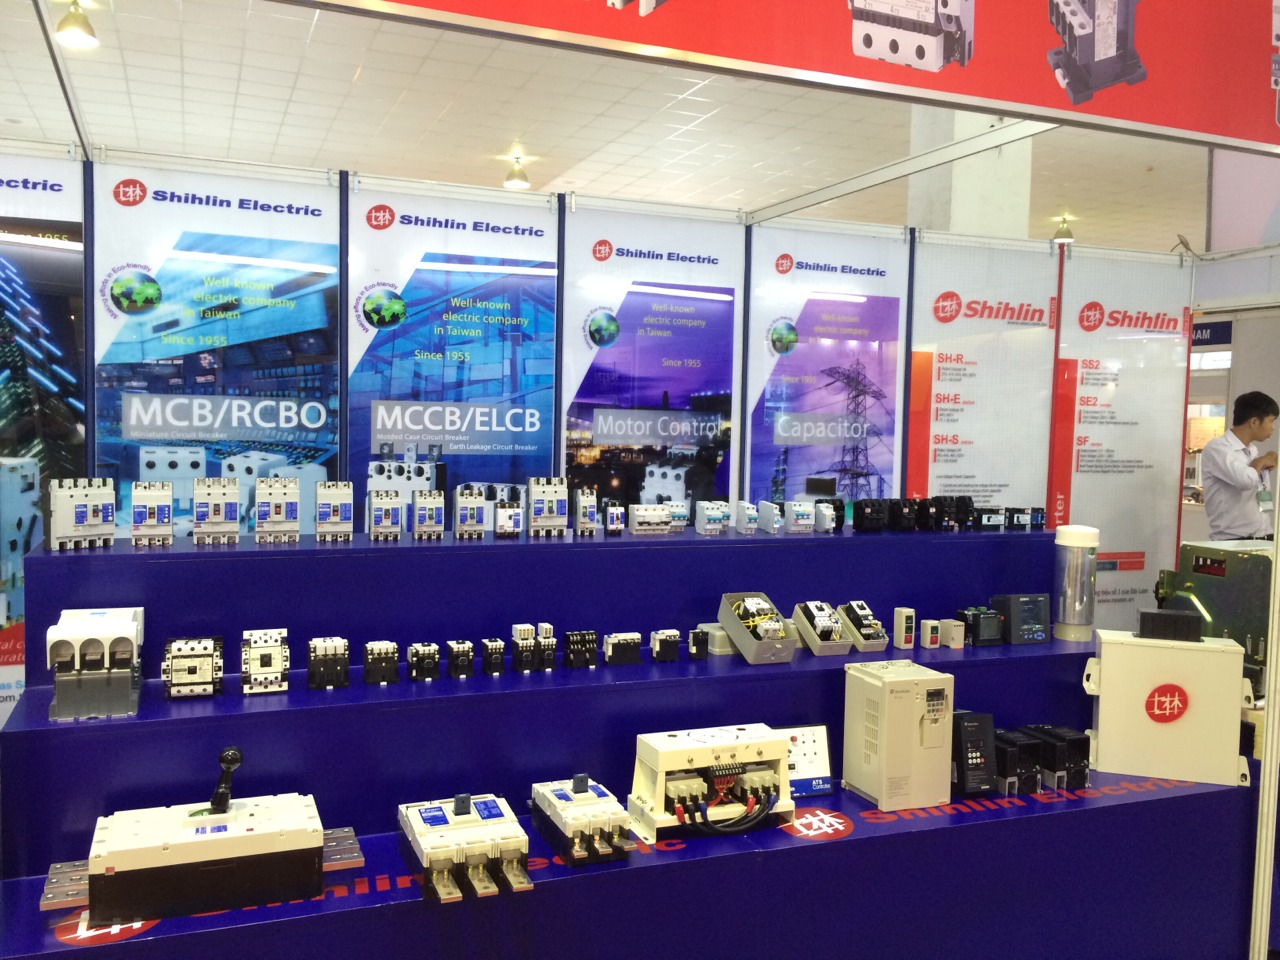 Shihlin Electric products at The 7th International Exhibition on Electrical Technology & Equipment- Vietnam ETE 2014